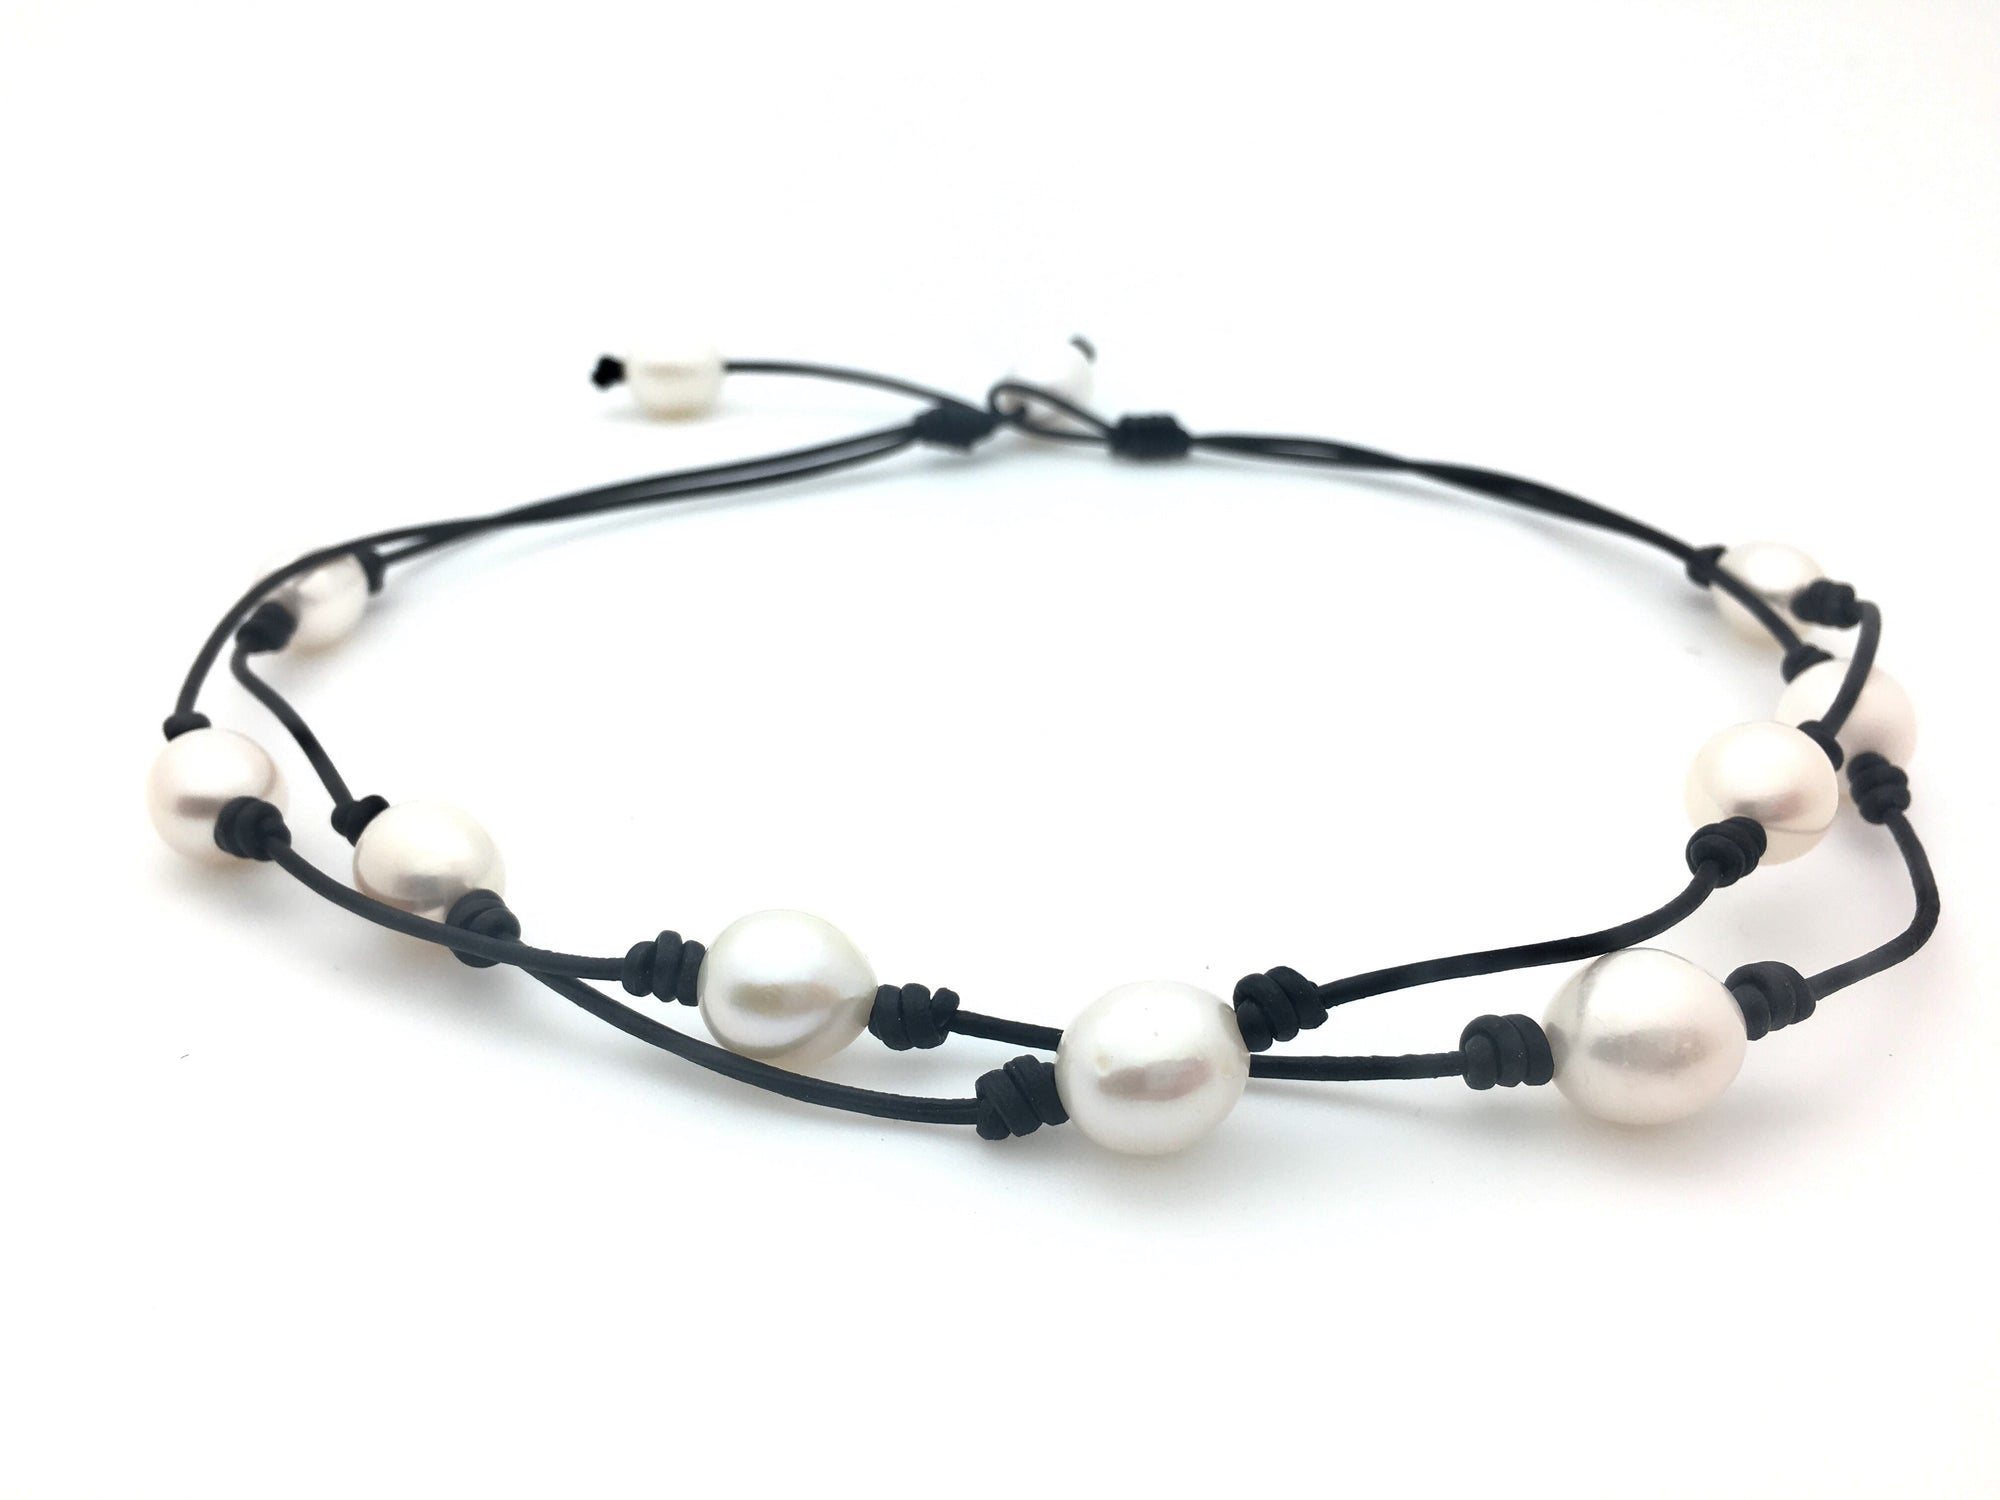 2 String 2 Way Pearl Necklace The Black Pearl Jewelry